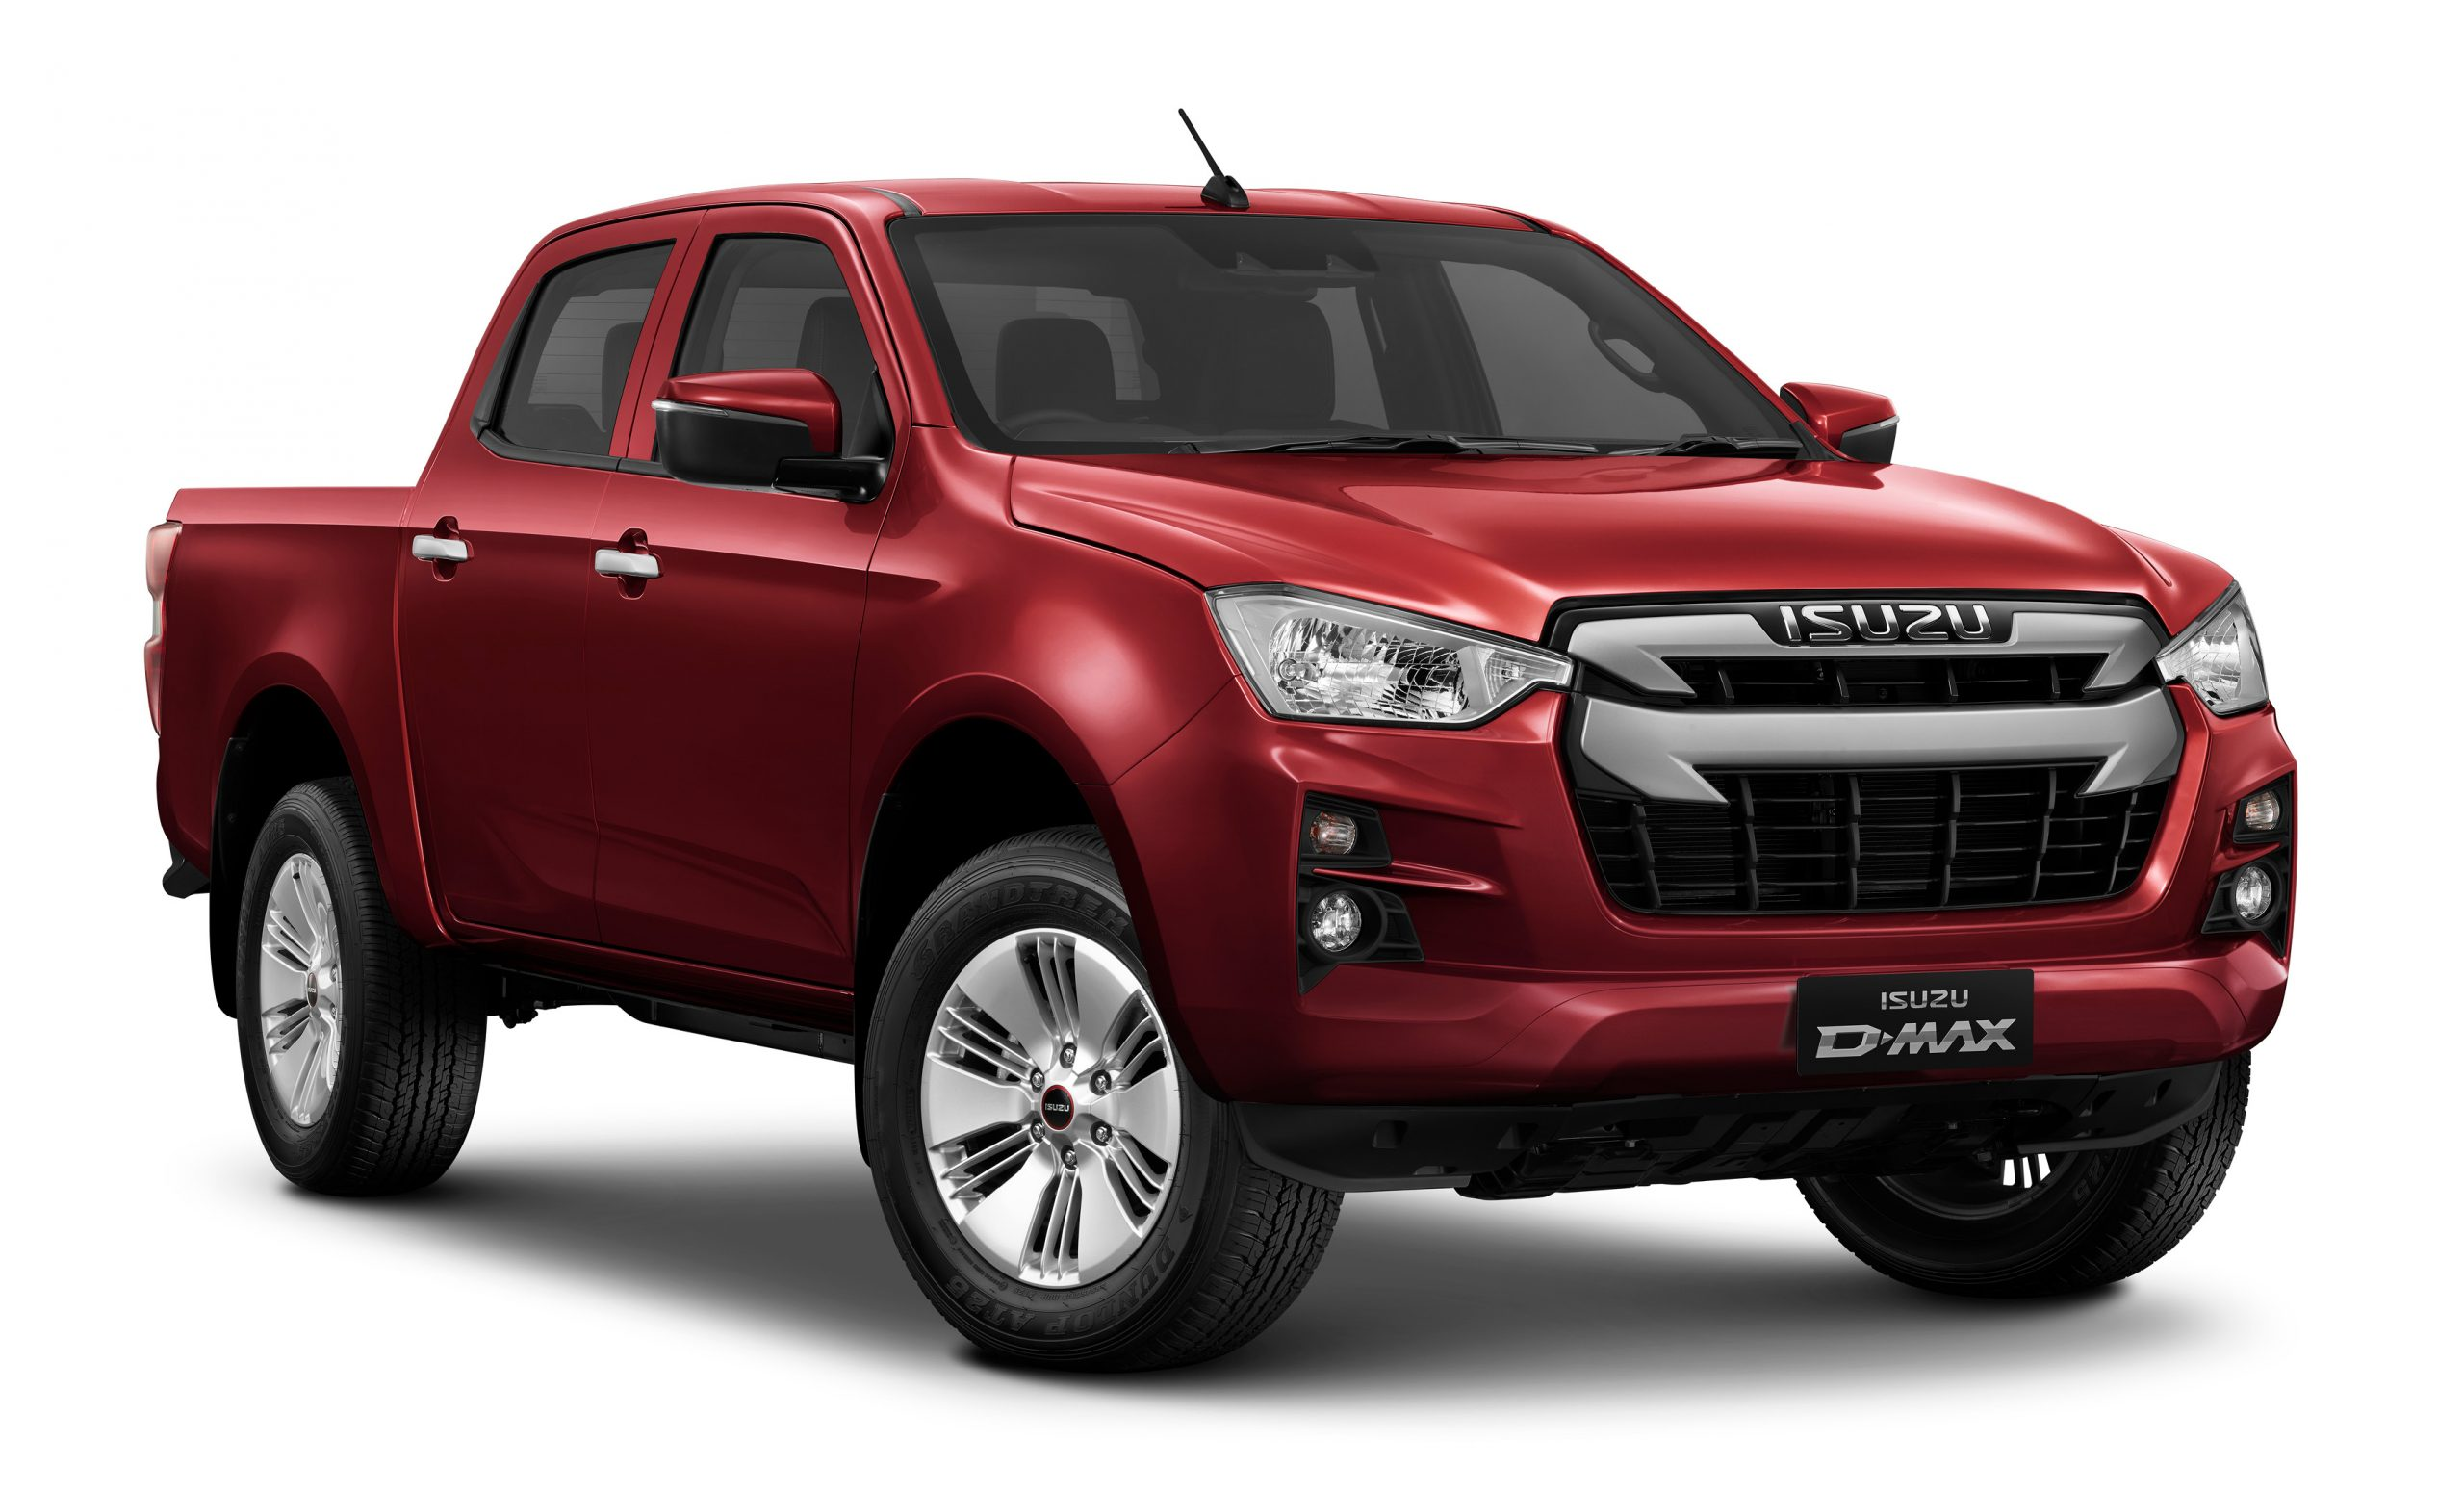 Isuzu D-Max DL20 Double Cab Spinel Red